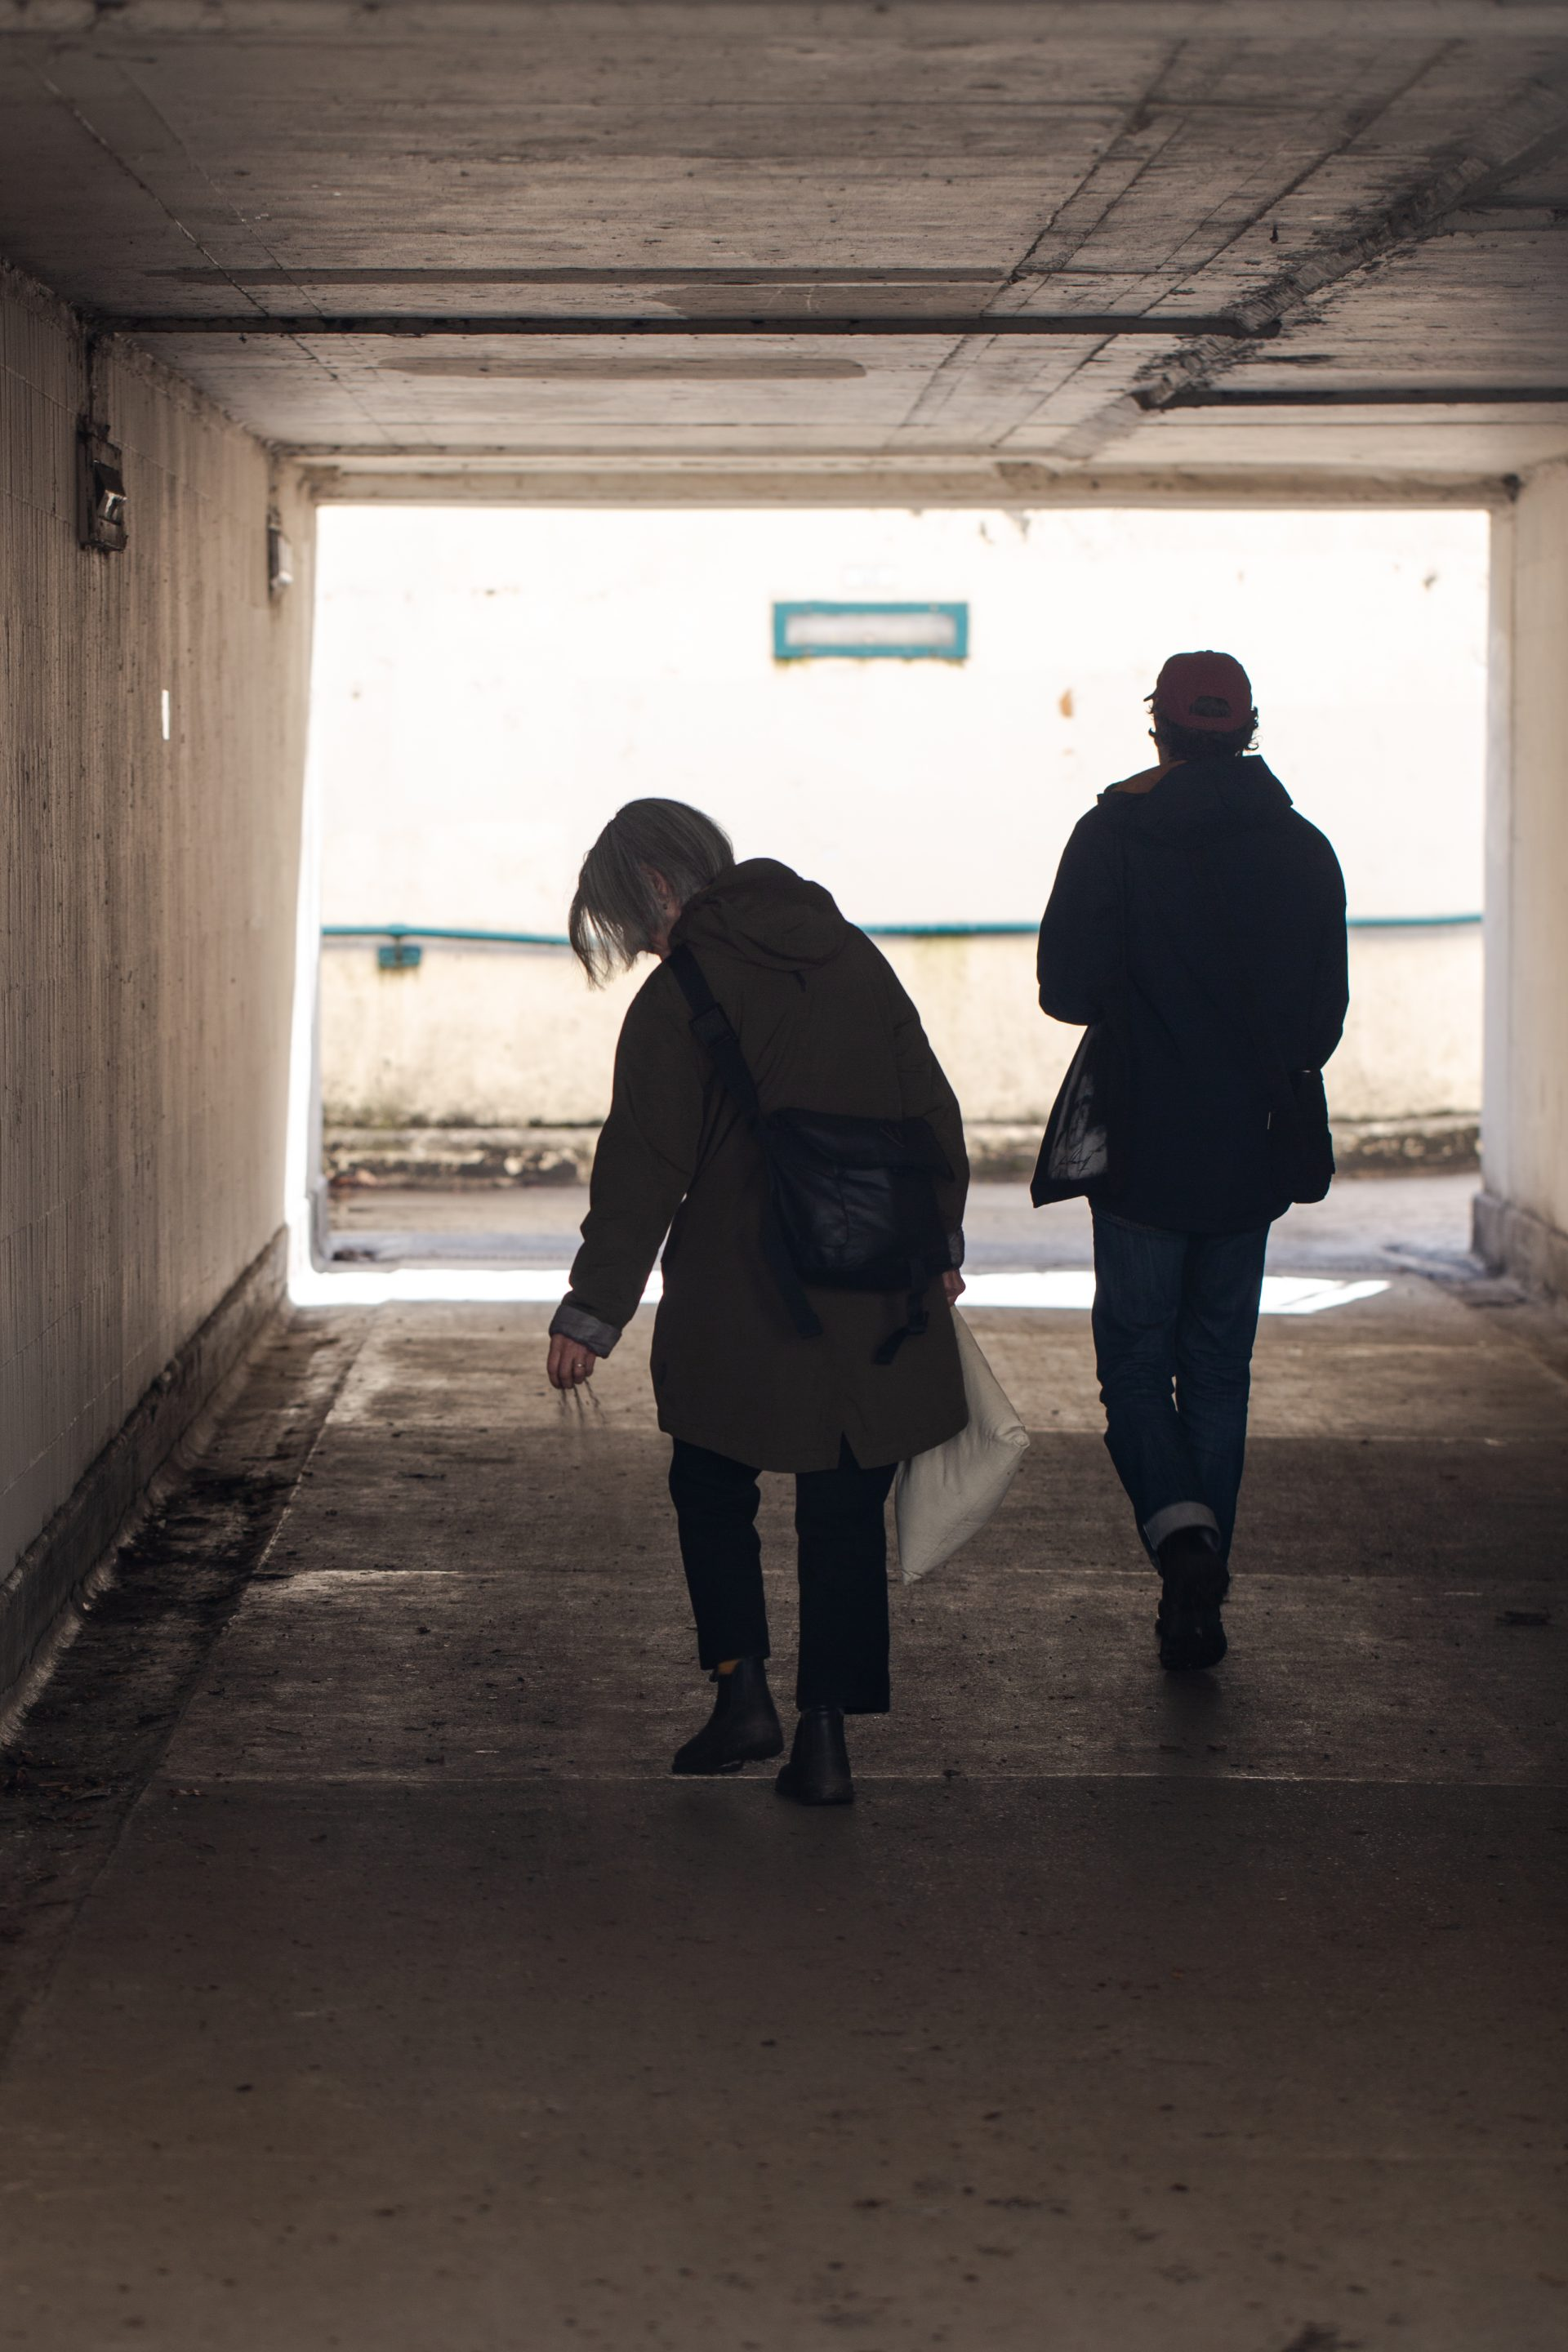 Two people (the artists) walking through a road tunnel, sprinkling silt on the ground.